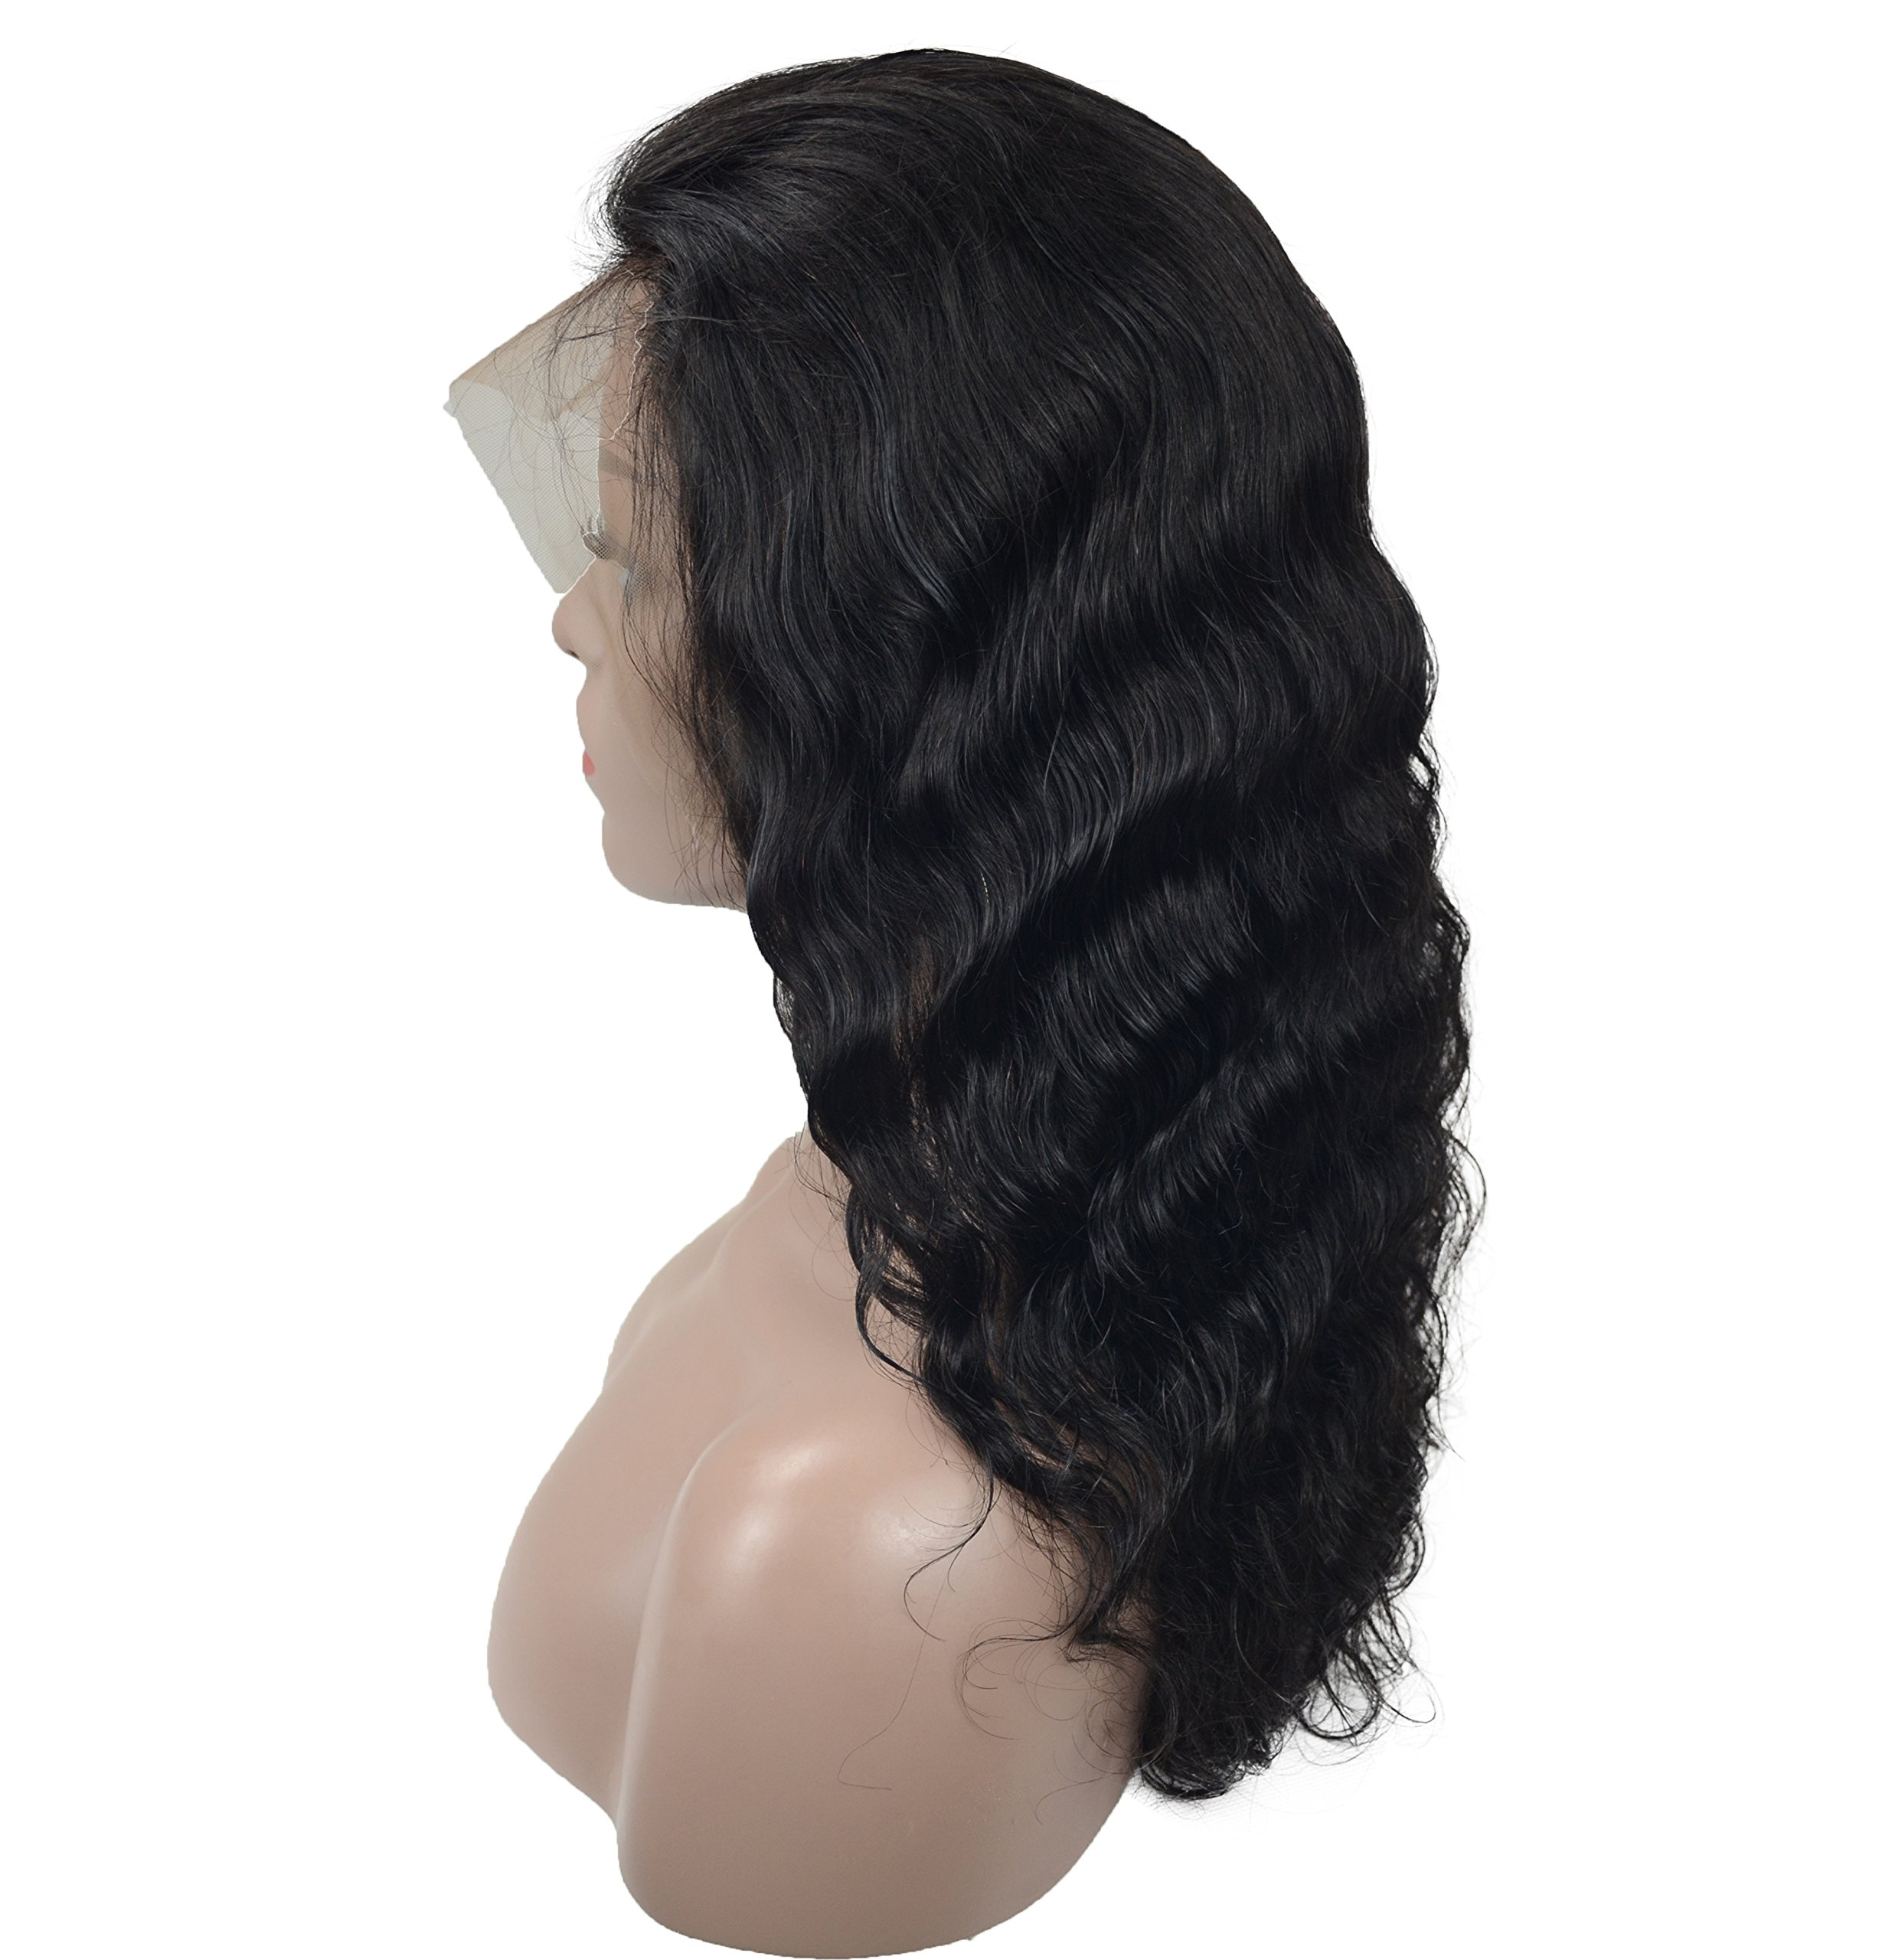 Human Hair Lace Front Wigs For Women, Veer Long Body Wave Glueless Brazilian Virgin 130% Density Natural Hairline With Baby Hair 20inch Natural Black(#1b)